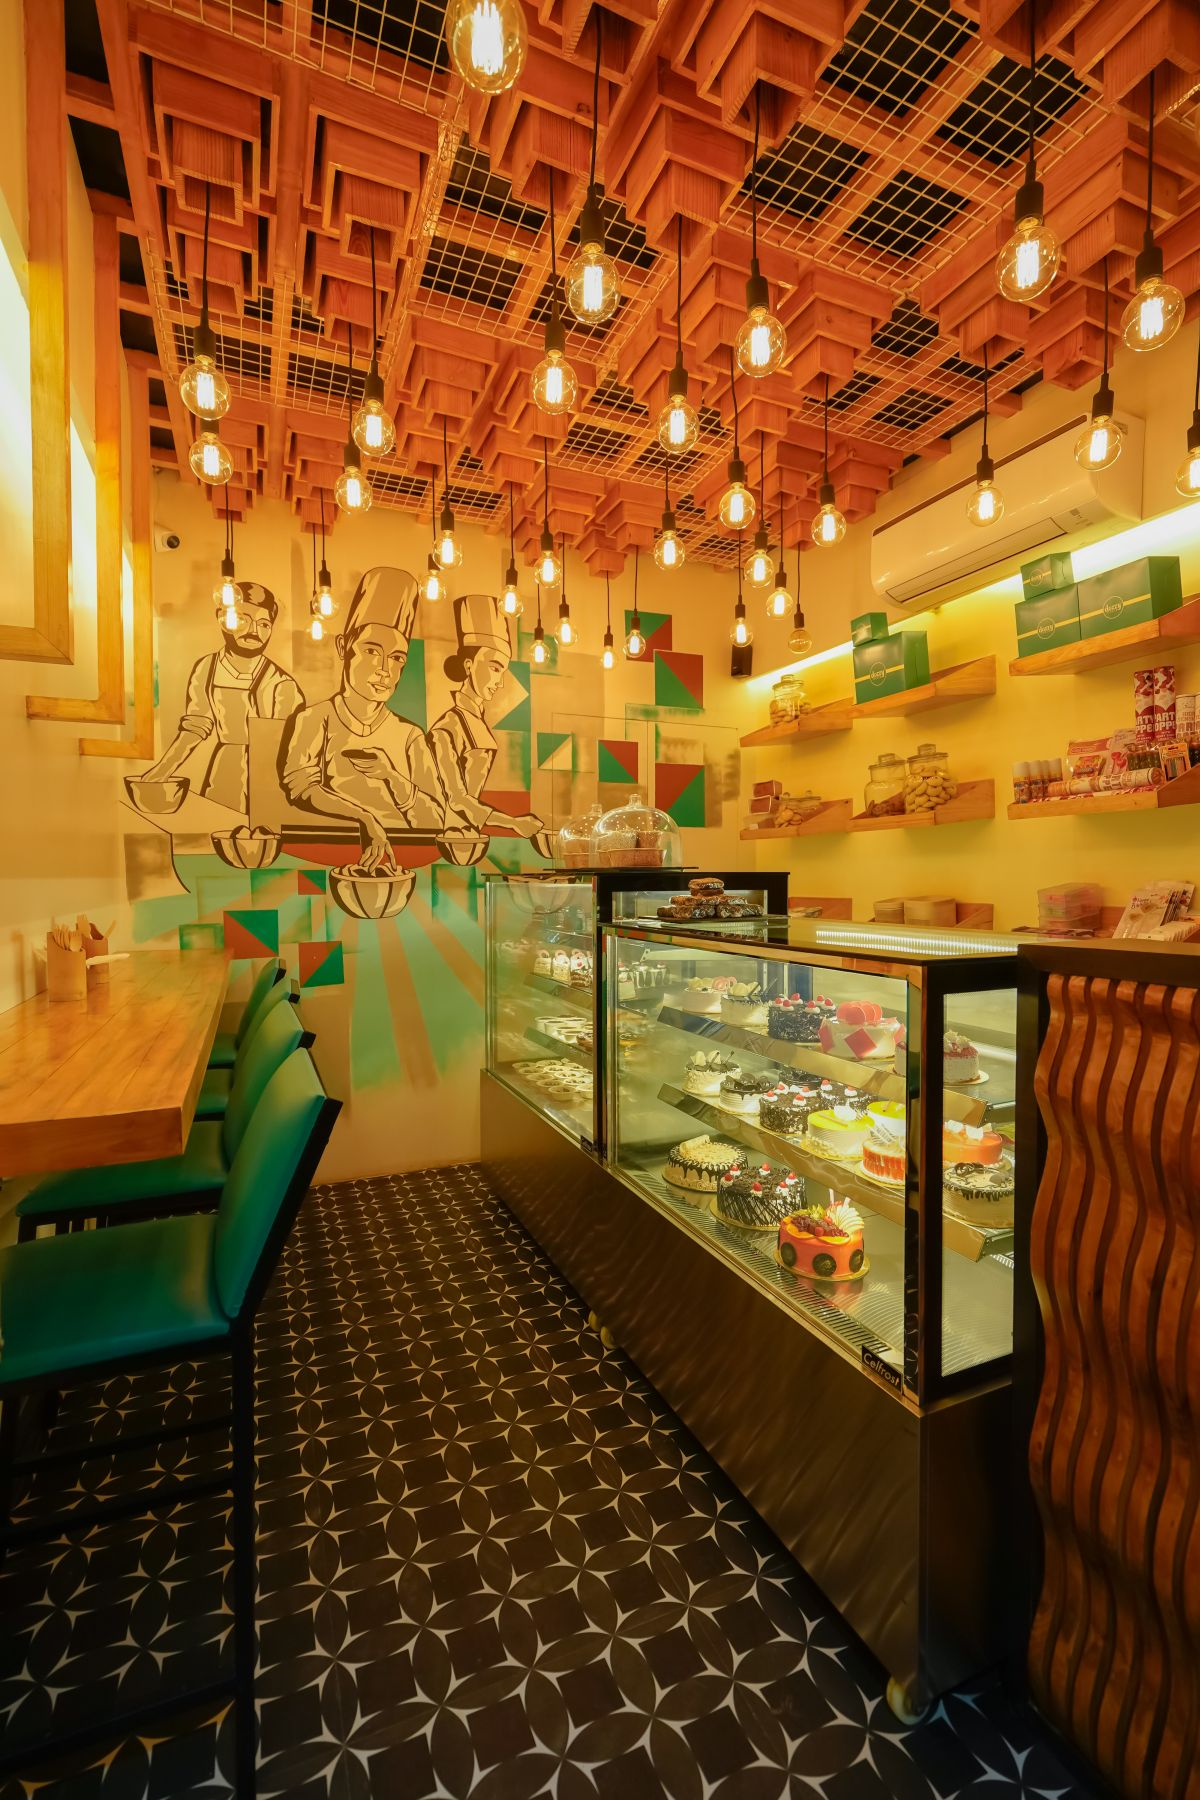 DOZZY BAKER -( A CAKE SHOP ), AT NAGPUR, BY FANP DESIGN STUDIO 1